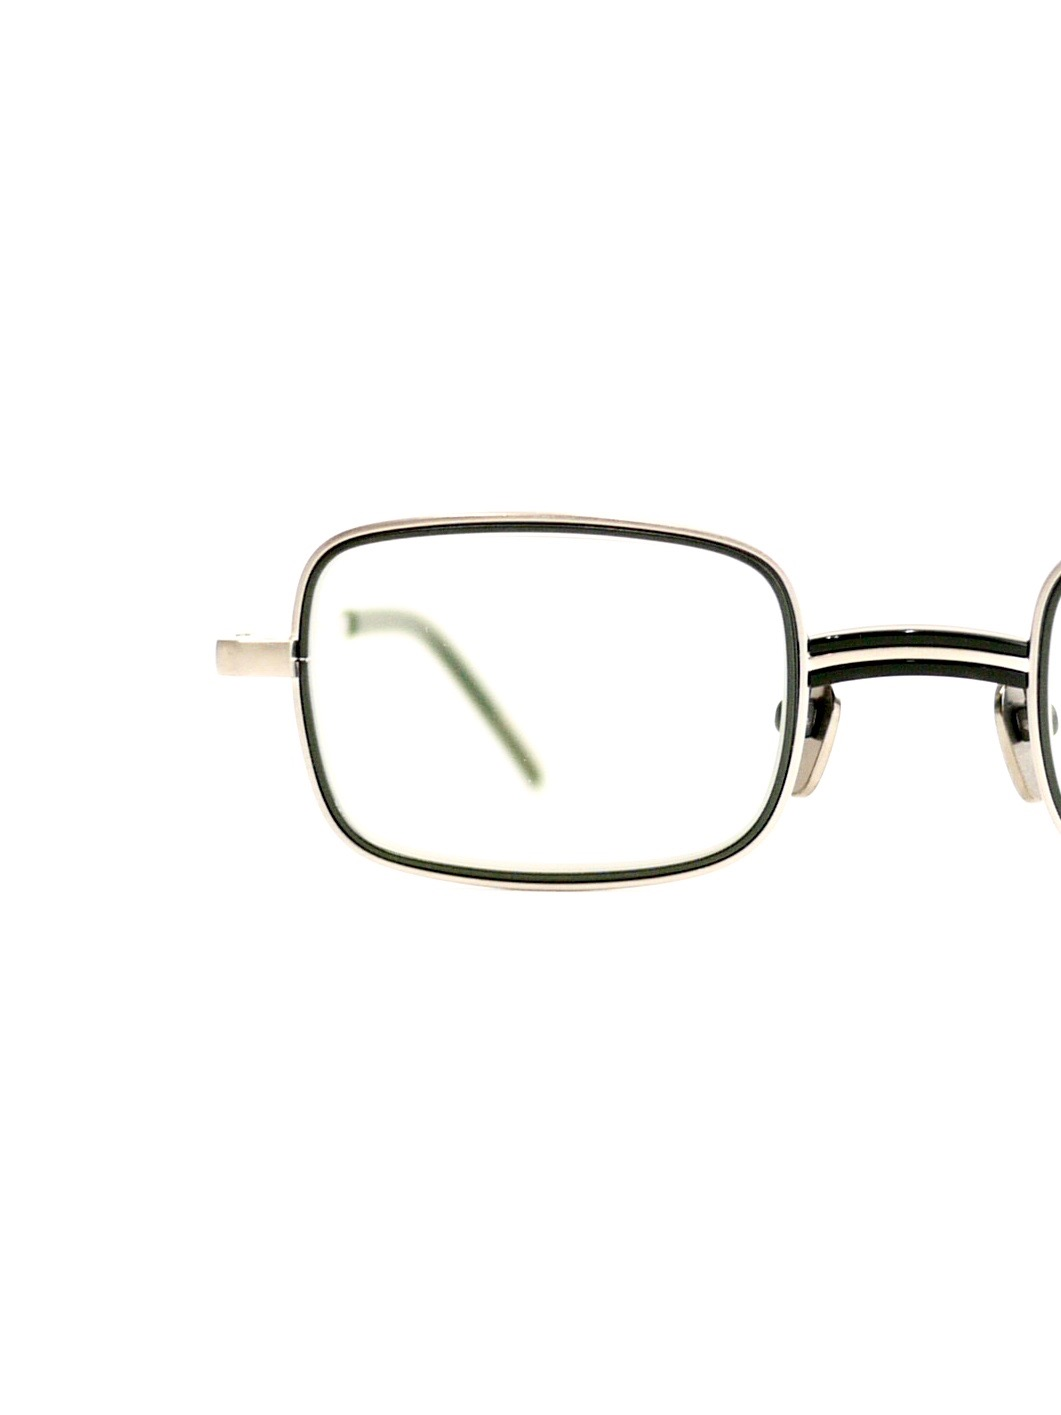 "kearny / bill ""moss green""  (clear lens)"